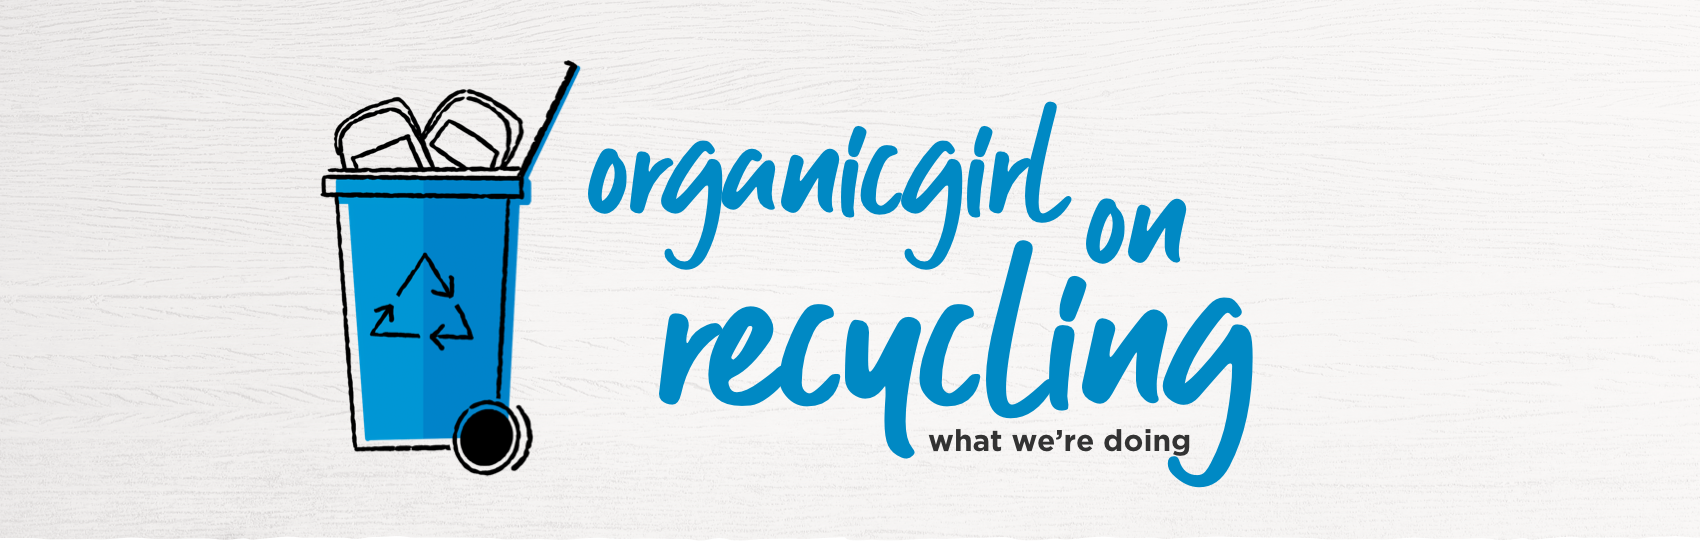 Organicgirl on Recycling